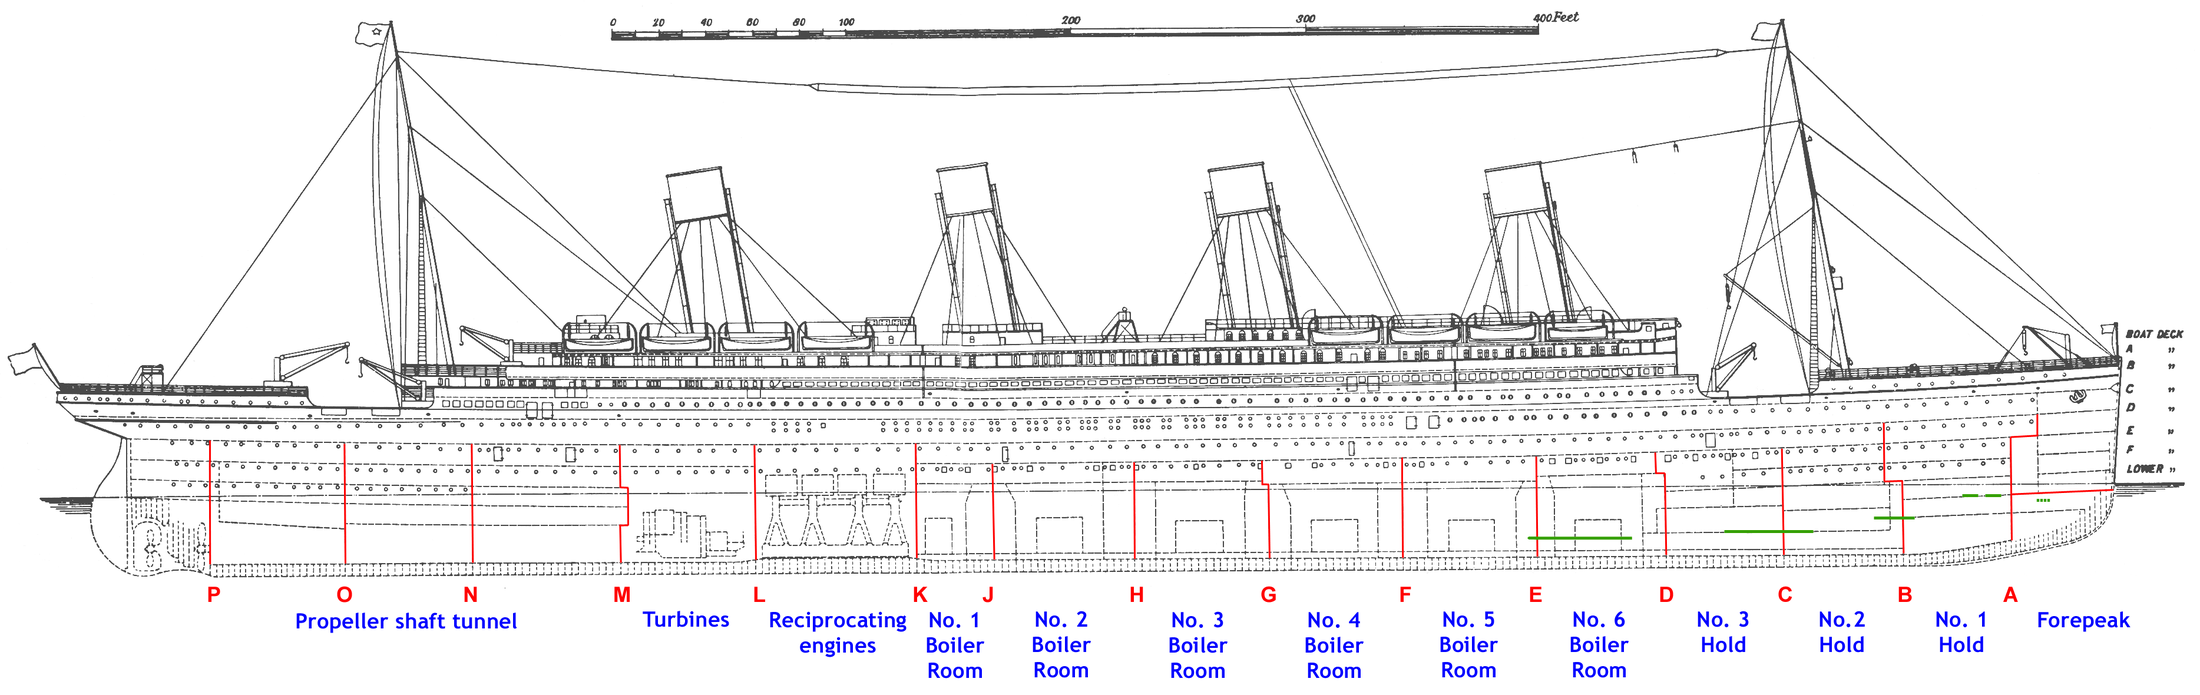 small resolution of diagram of rms titanic